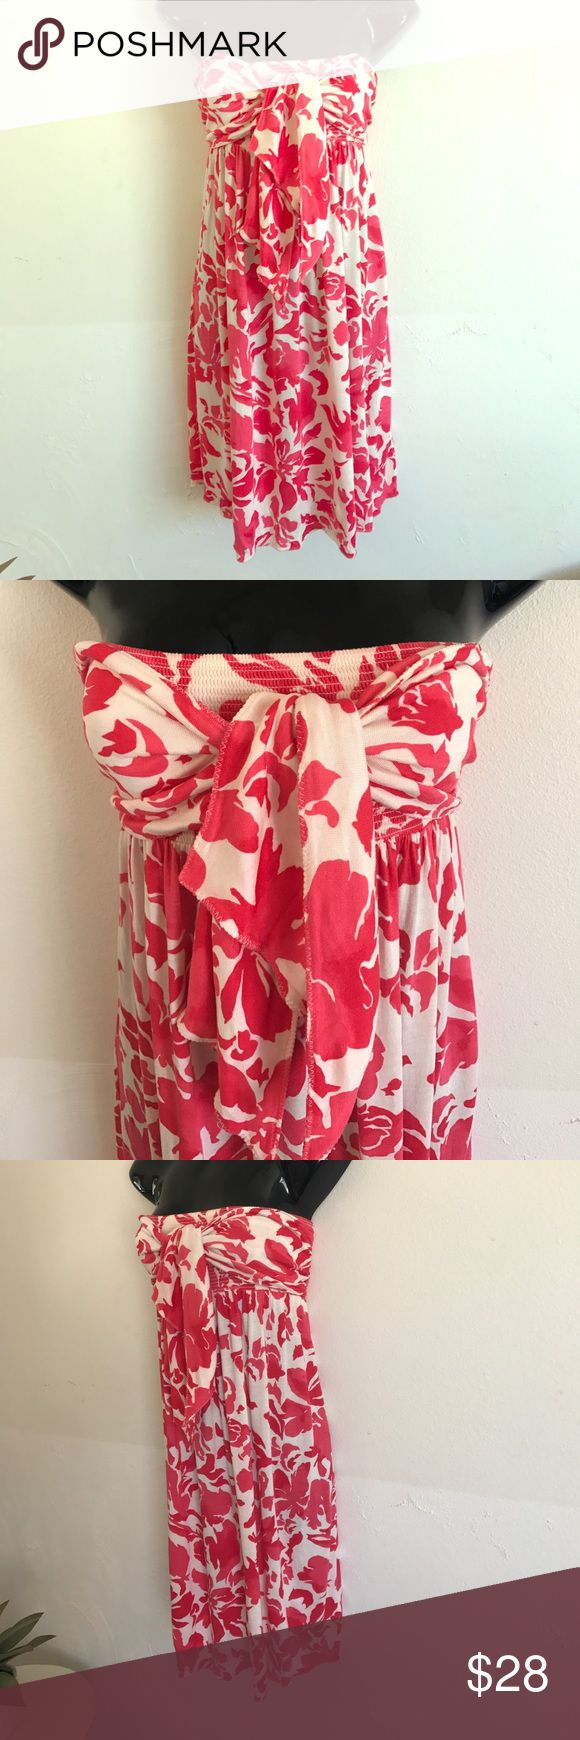 Strapless Juicy Couture printed dress size Petite Fantastic Juicy Couture reddish pink and cream strapless dress. Length is 30 inches from top of dress to bottom. Bandeau style so it holds well and then you can tie the front how you please. In great condition 👍🏼. Size Petite. Or small. Enjoy Juicy Couture Dresses Strapless